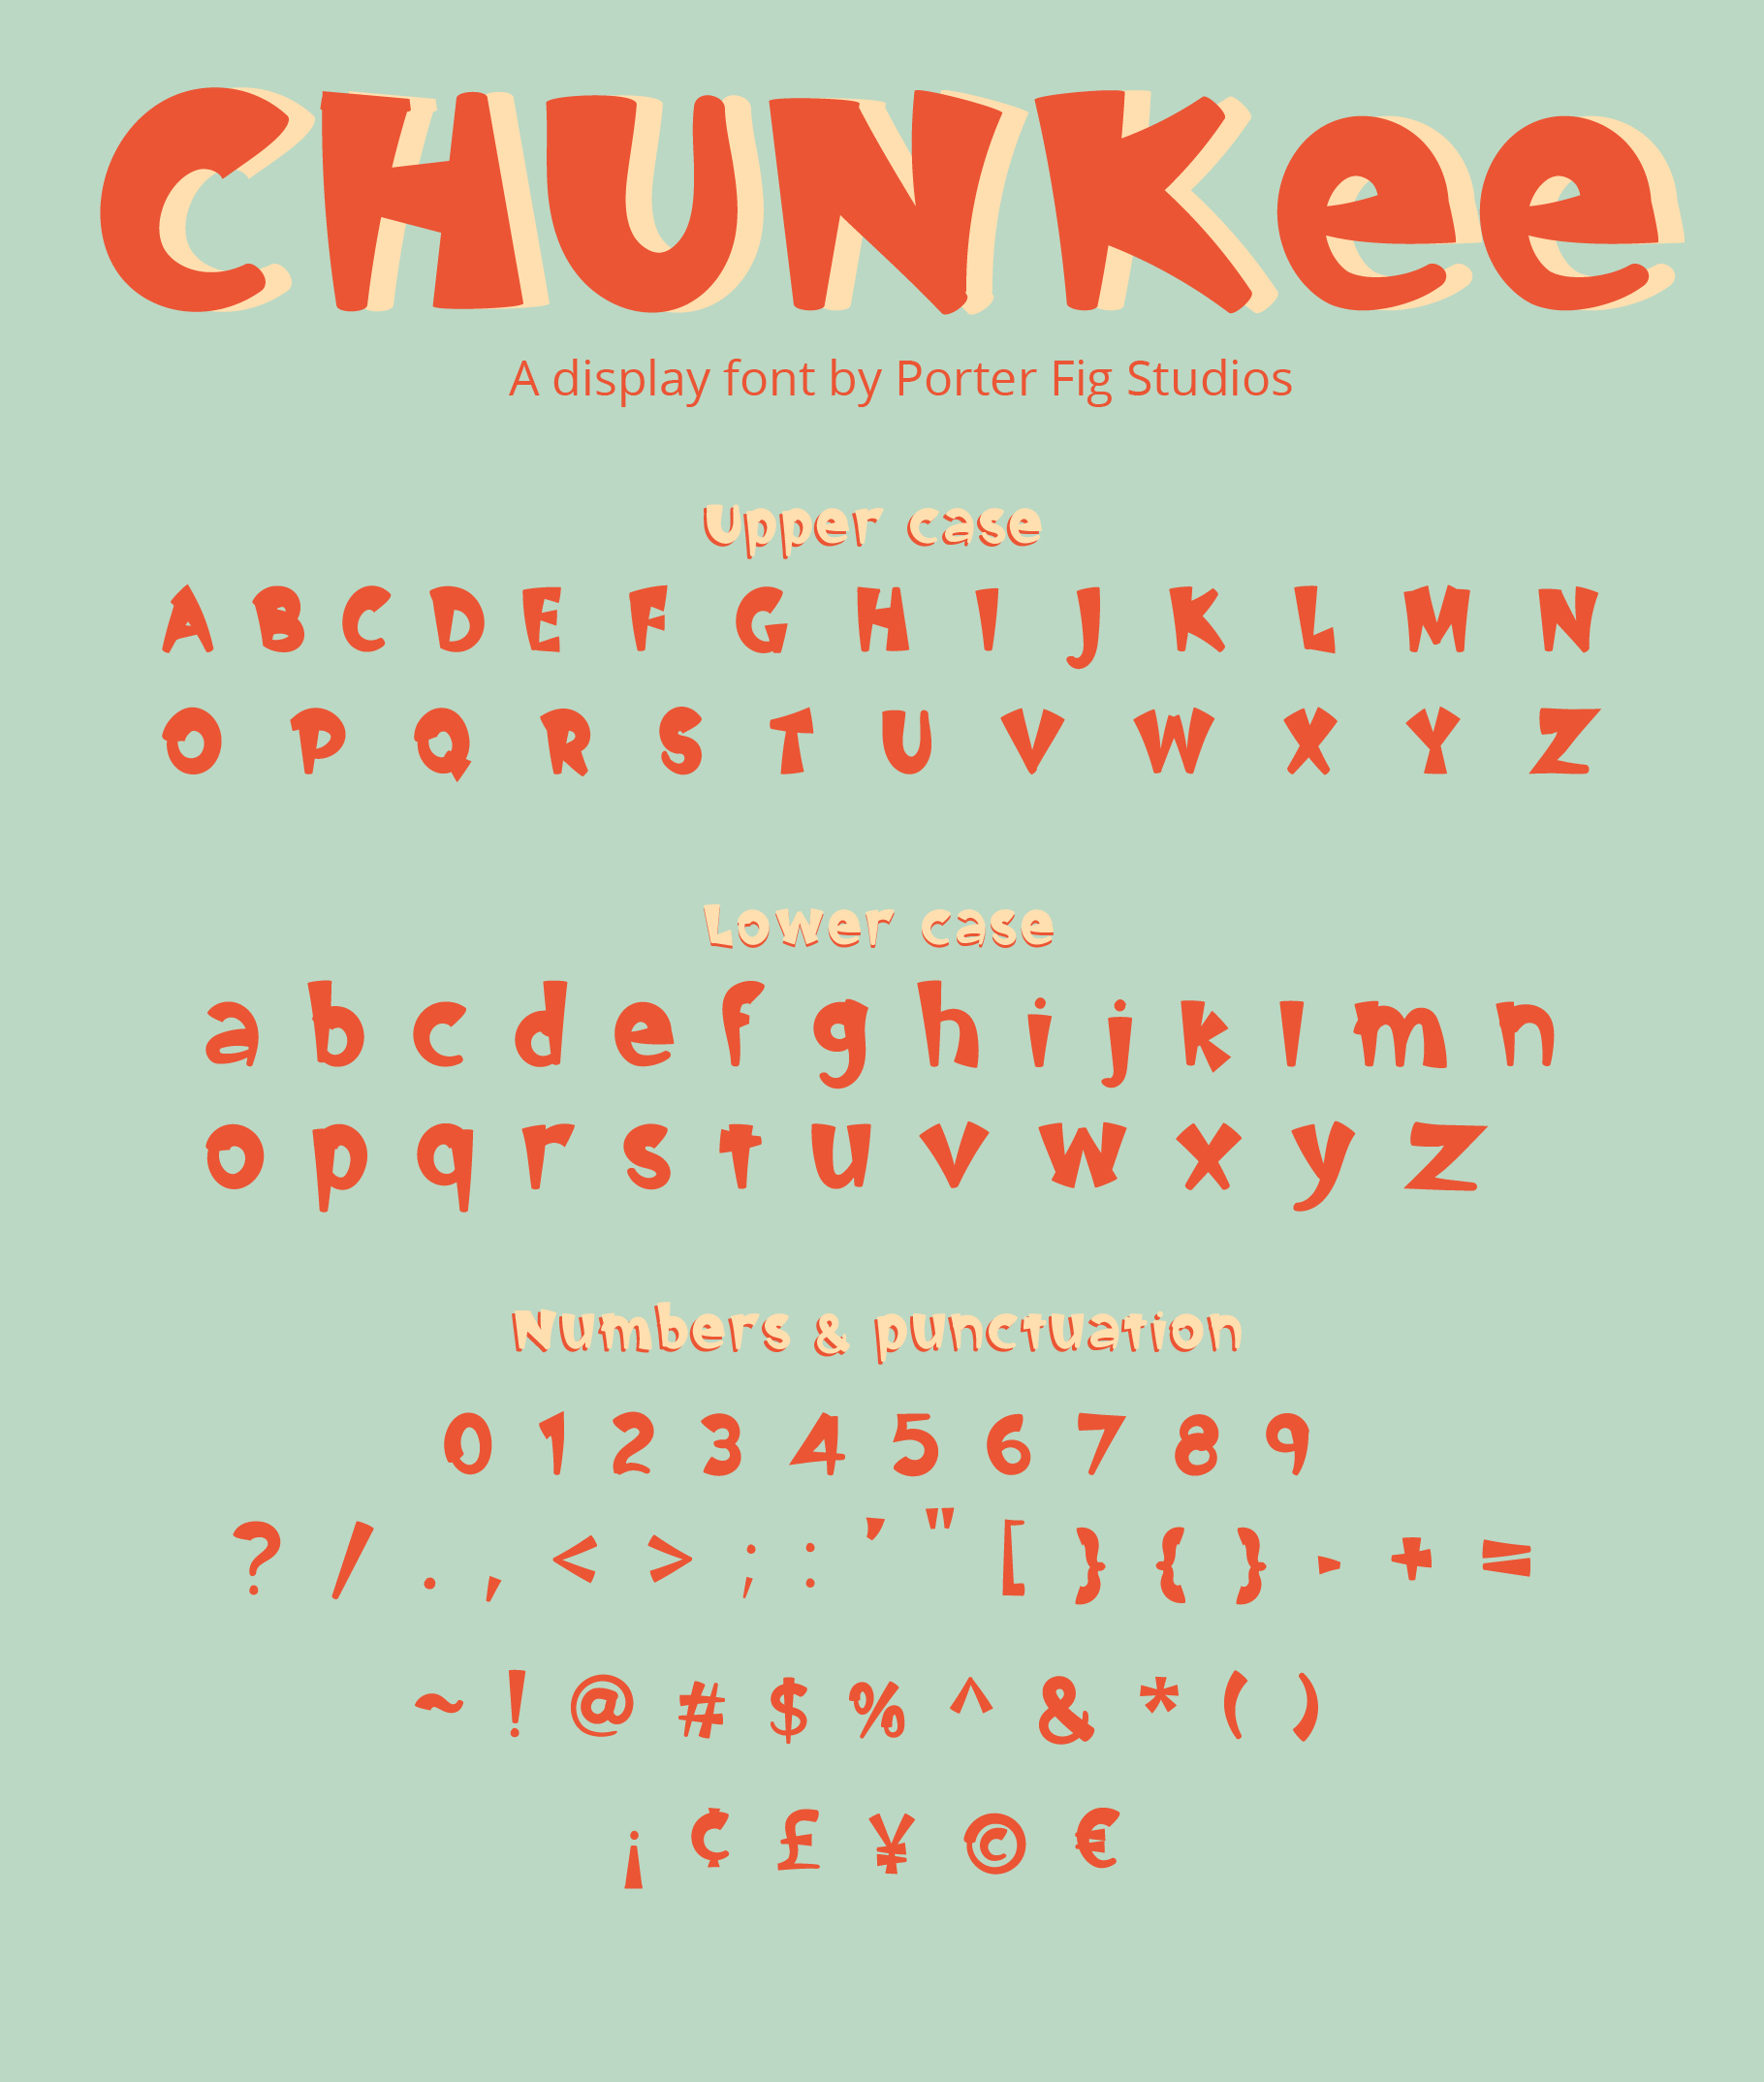 Chunkee Bold Handwritten Display Font example image 2